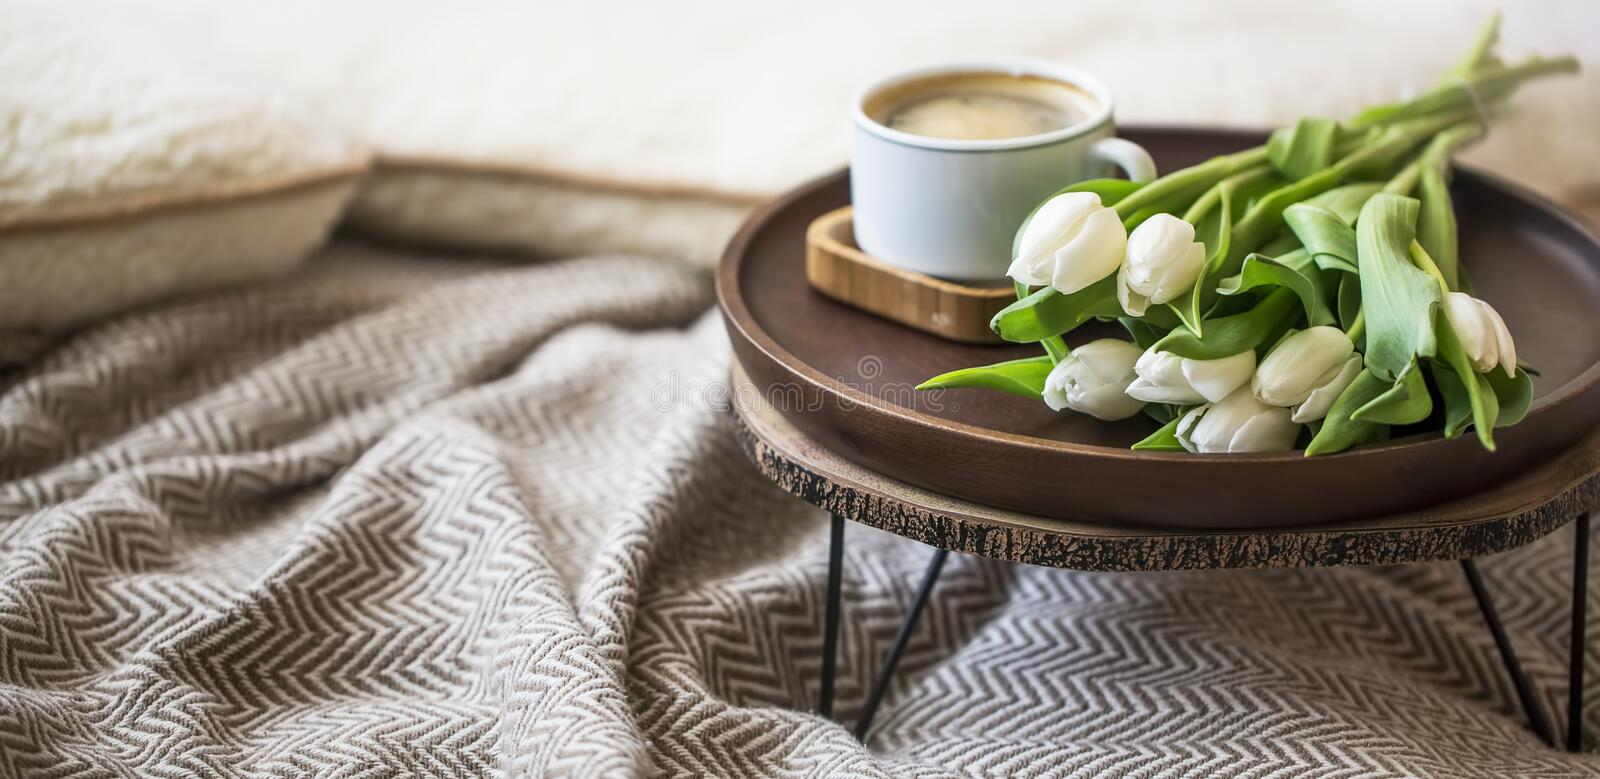 Home interior decor with wooden table, tulips flowers bouquet and coffee cup, cozy blanket, spring interior lifestyle decorations royalty free stock photography